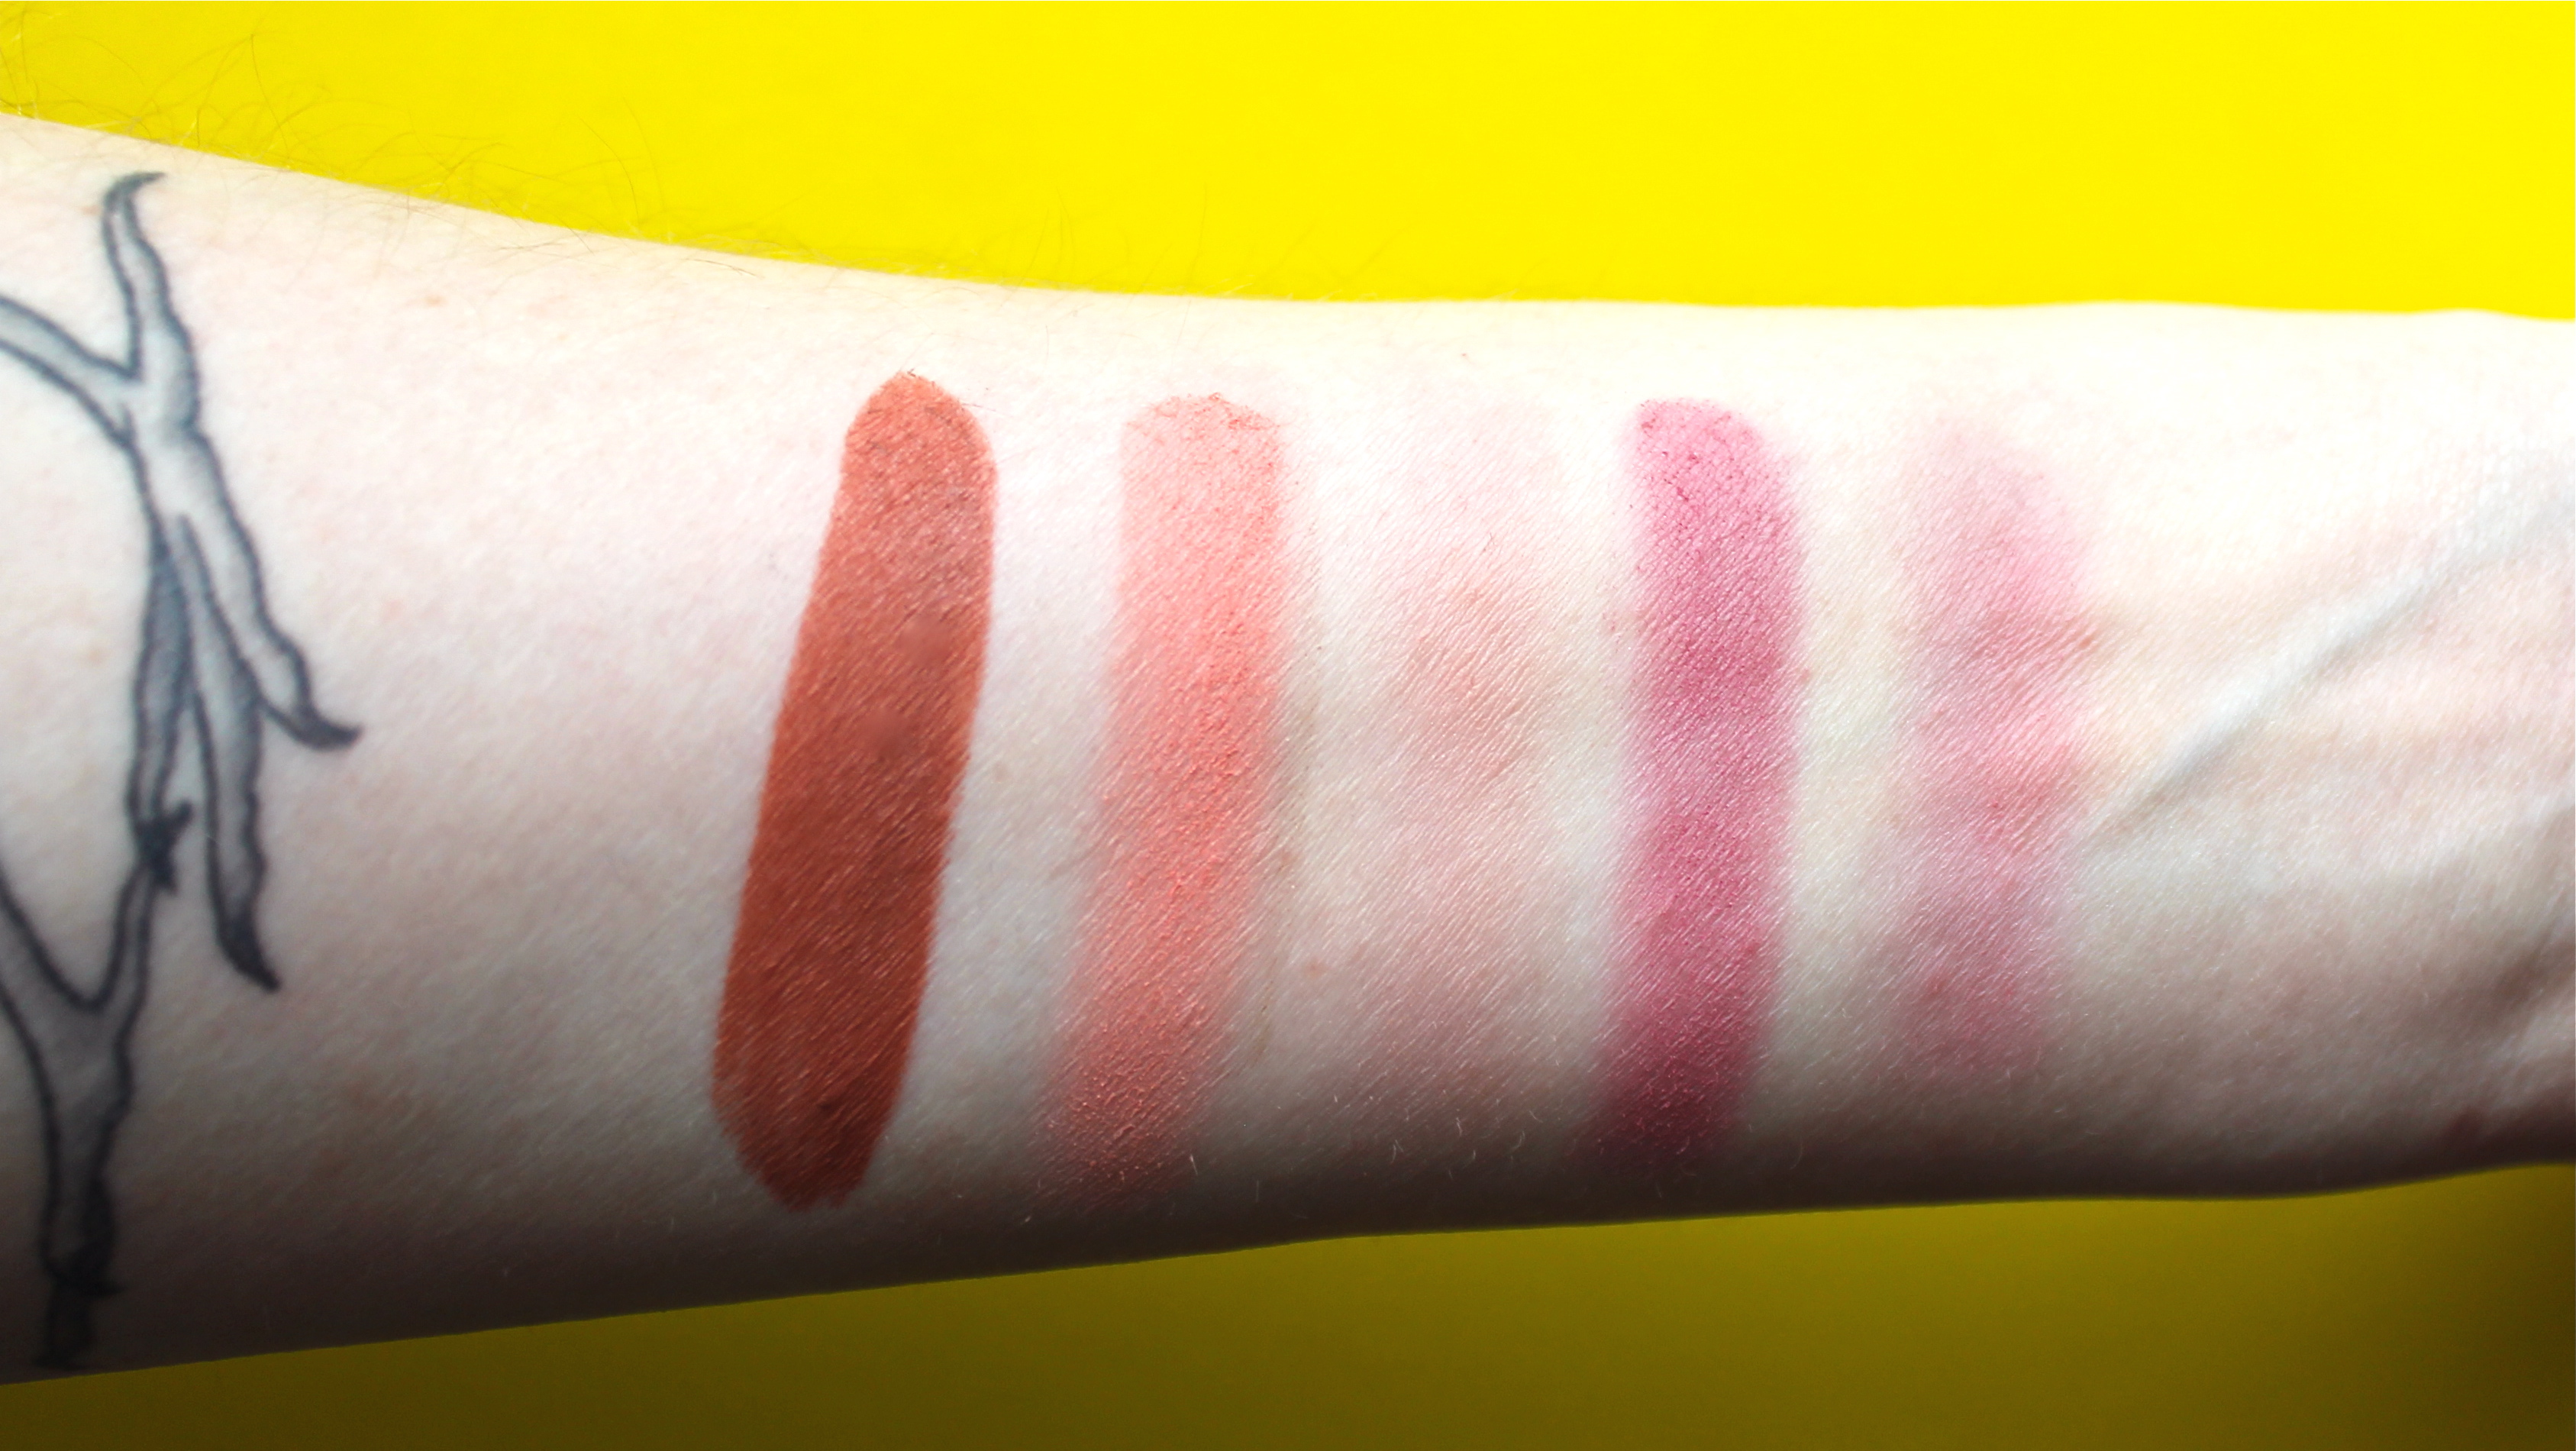 LORAC Color Source Blush and Alter Ego Lipstick